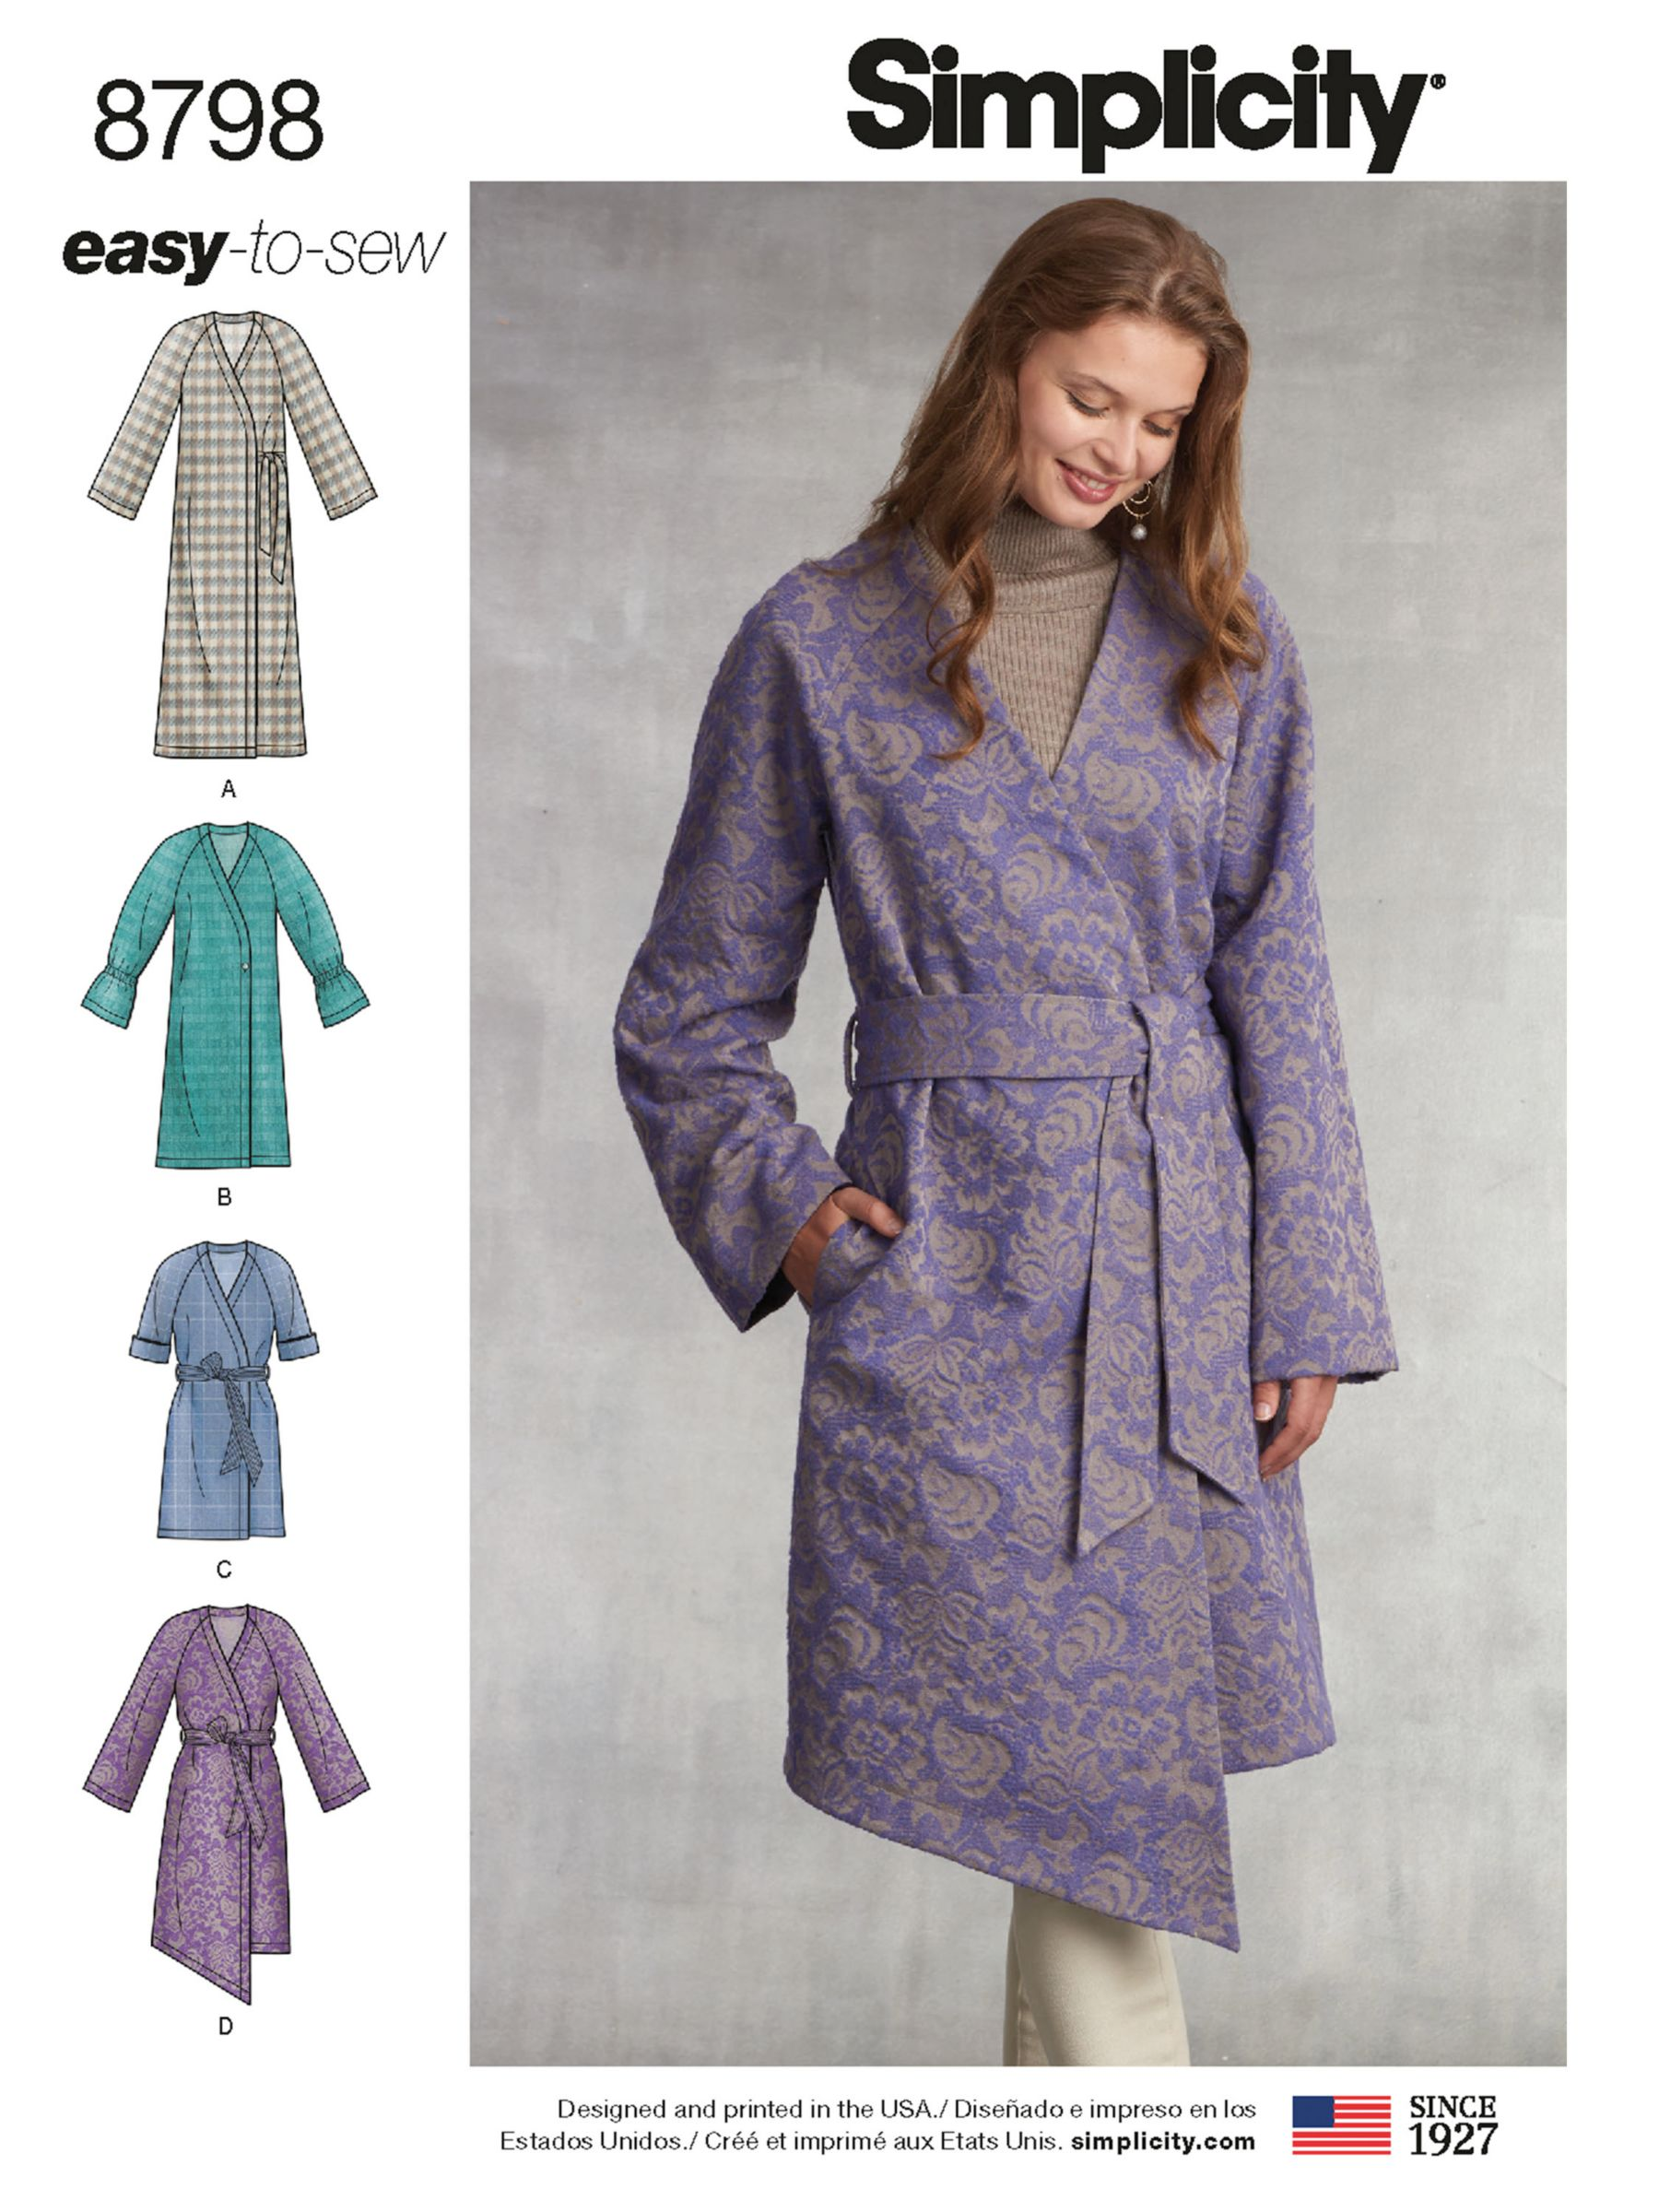 Simplicity Simplicity Women's Coat Sewing Pattern, 8798